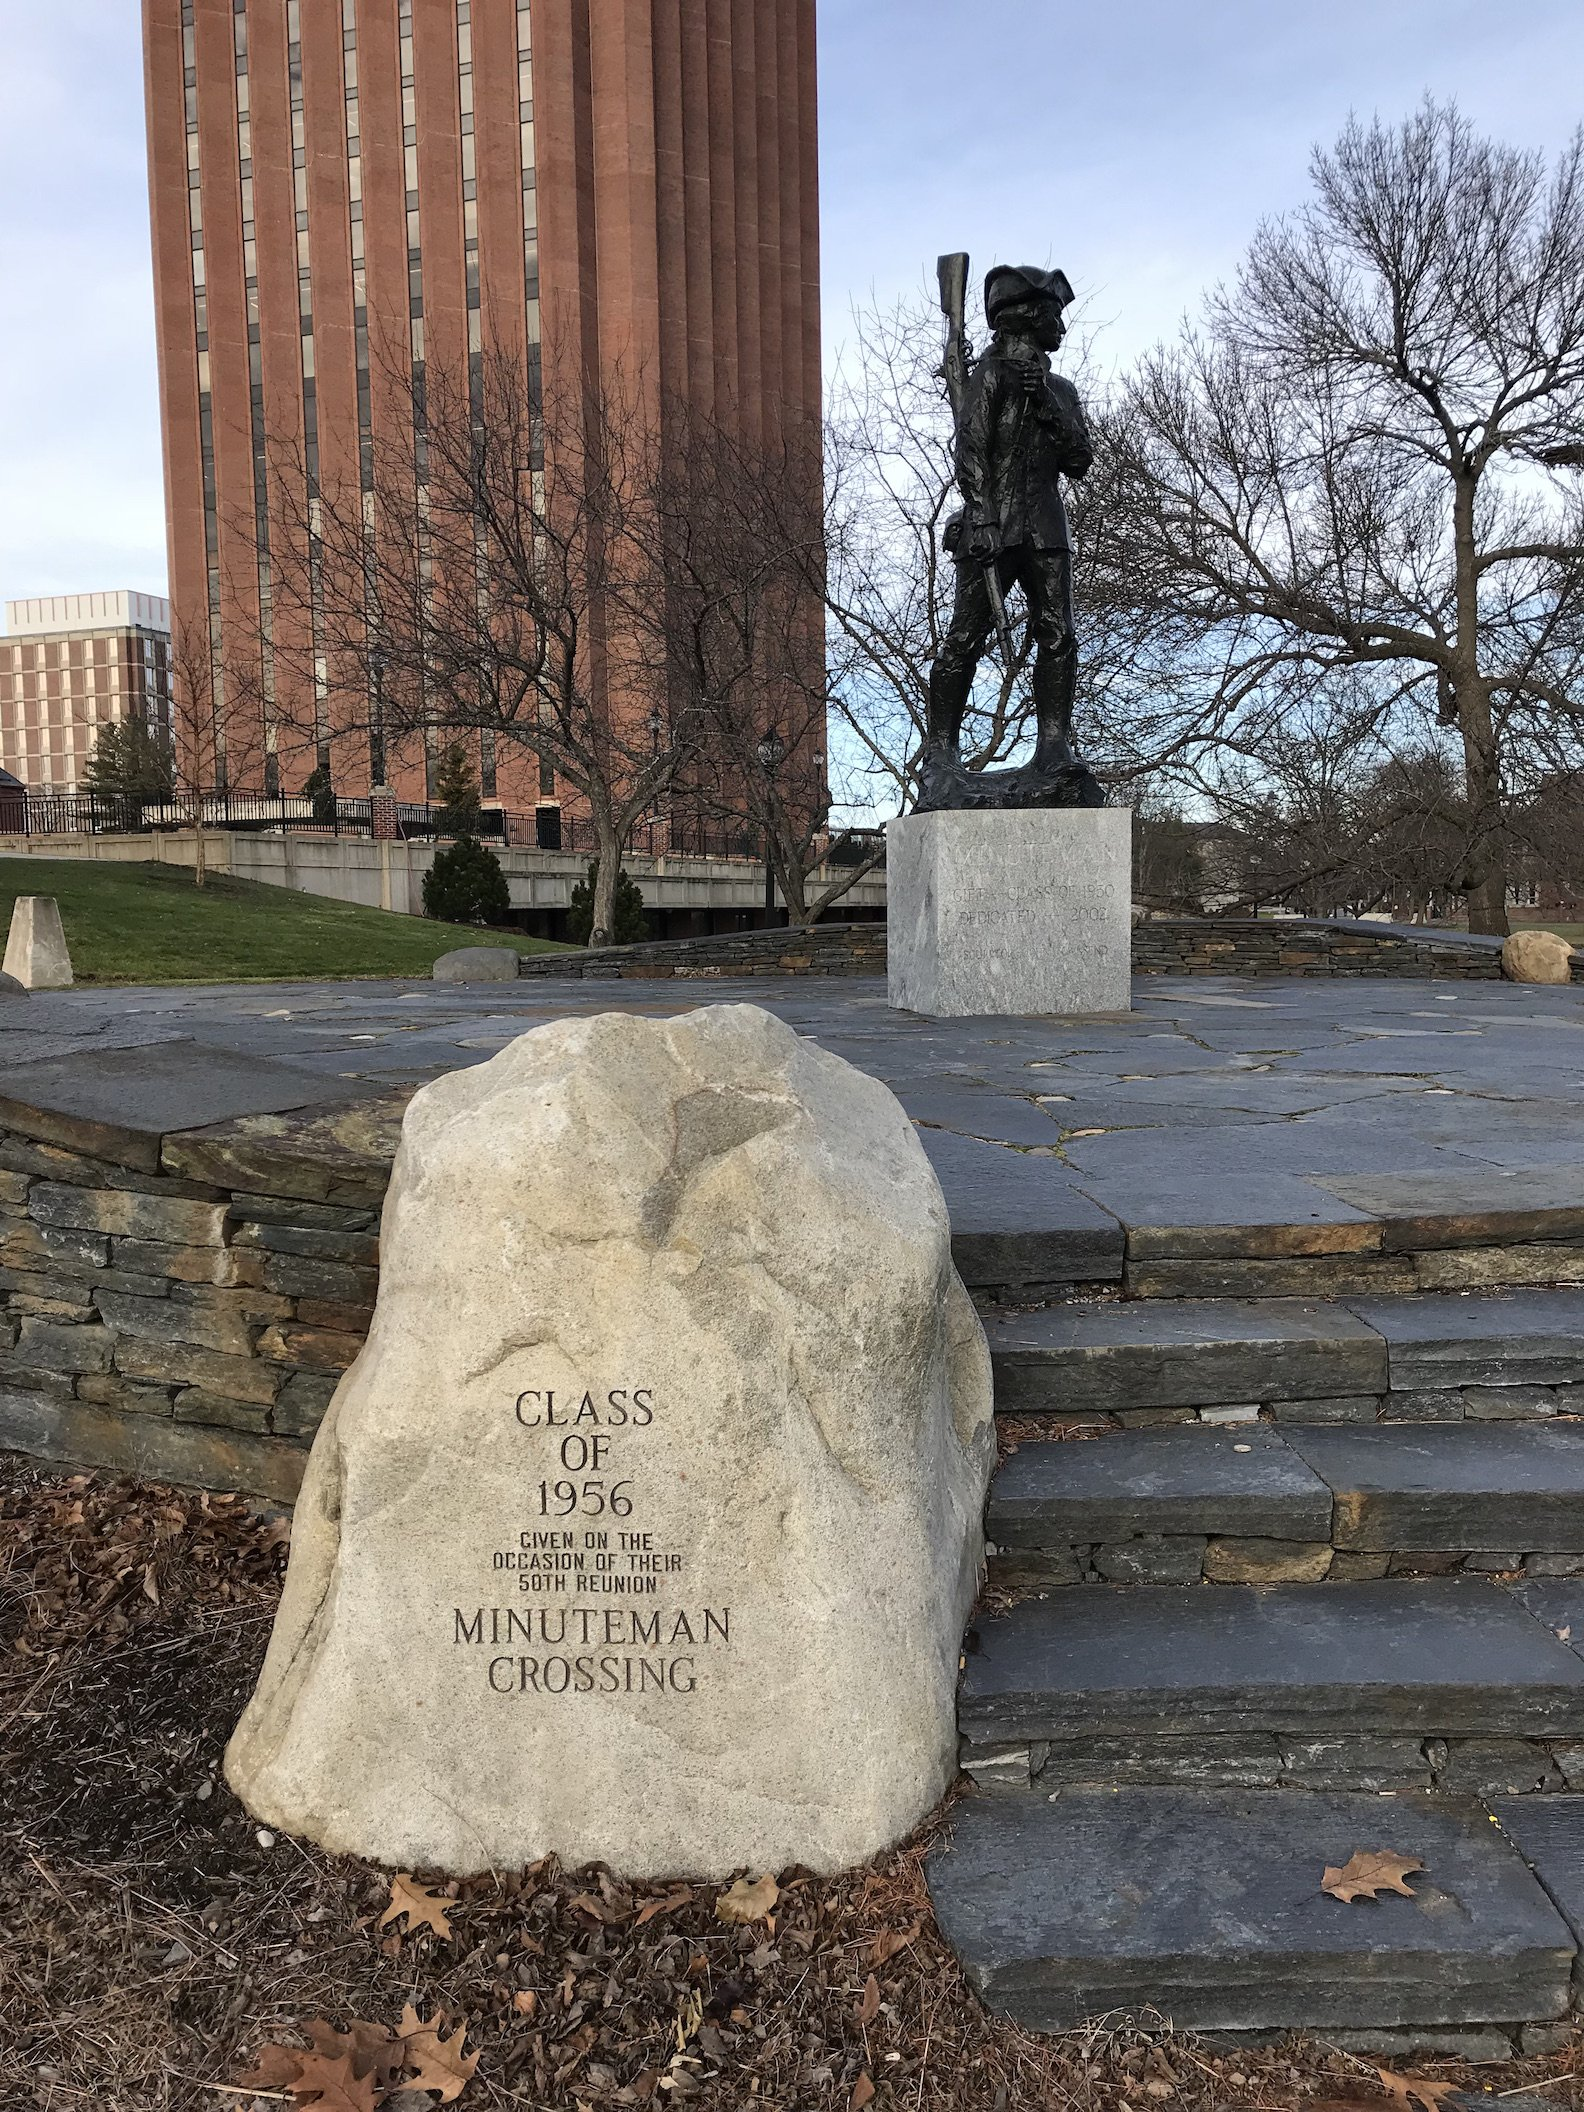 Minuteman Statue and Crossing, 2017.